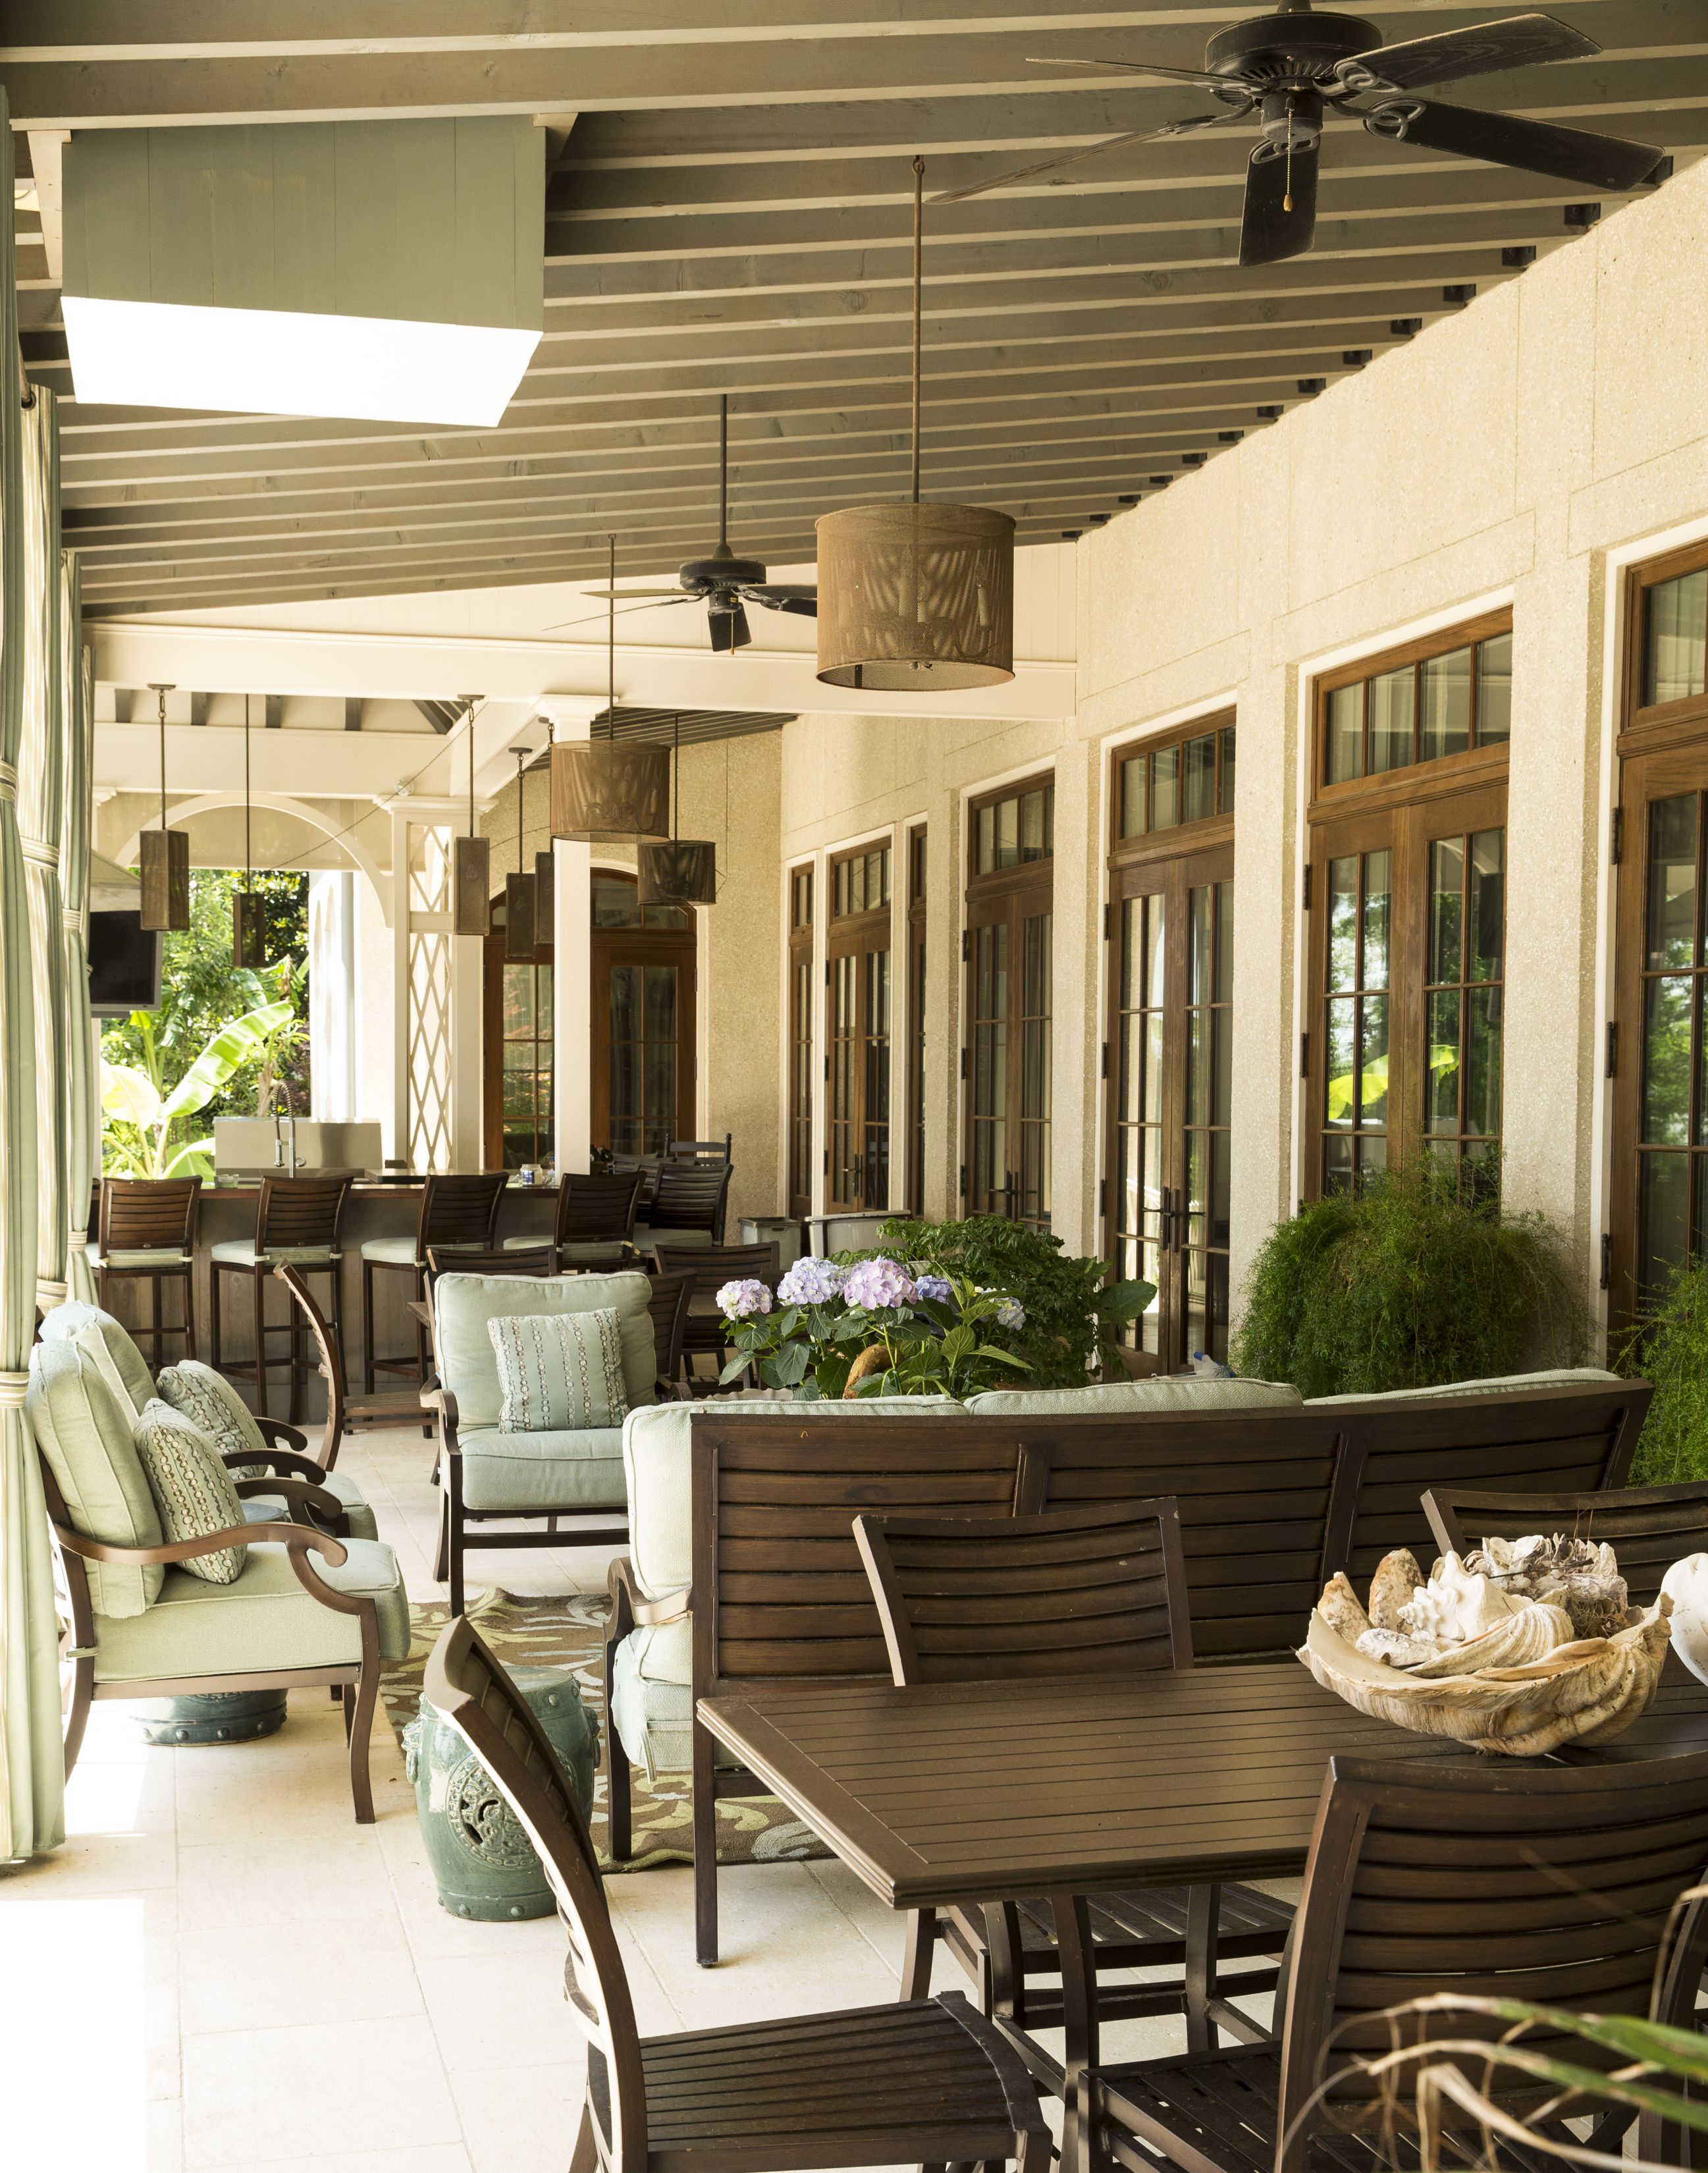 Outdoor dining | The most significant offering in Savannah ...